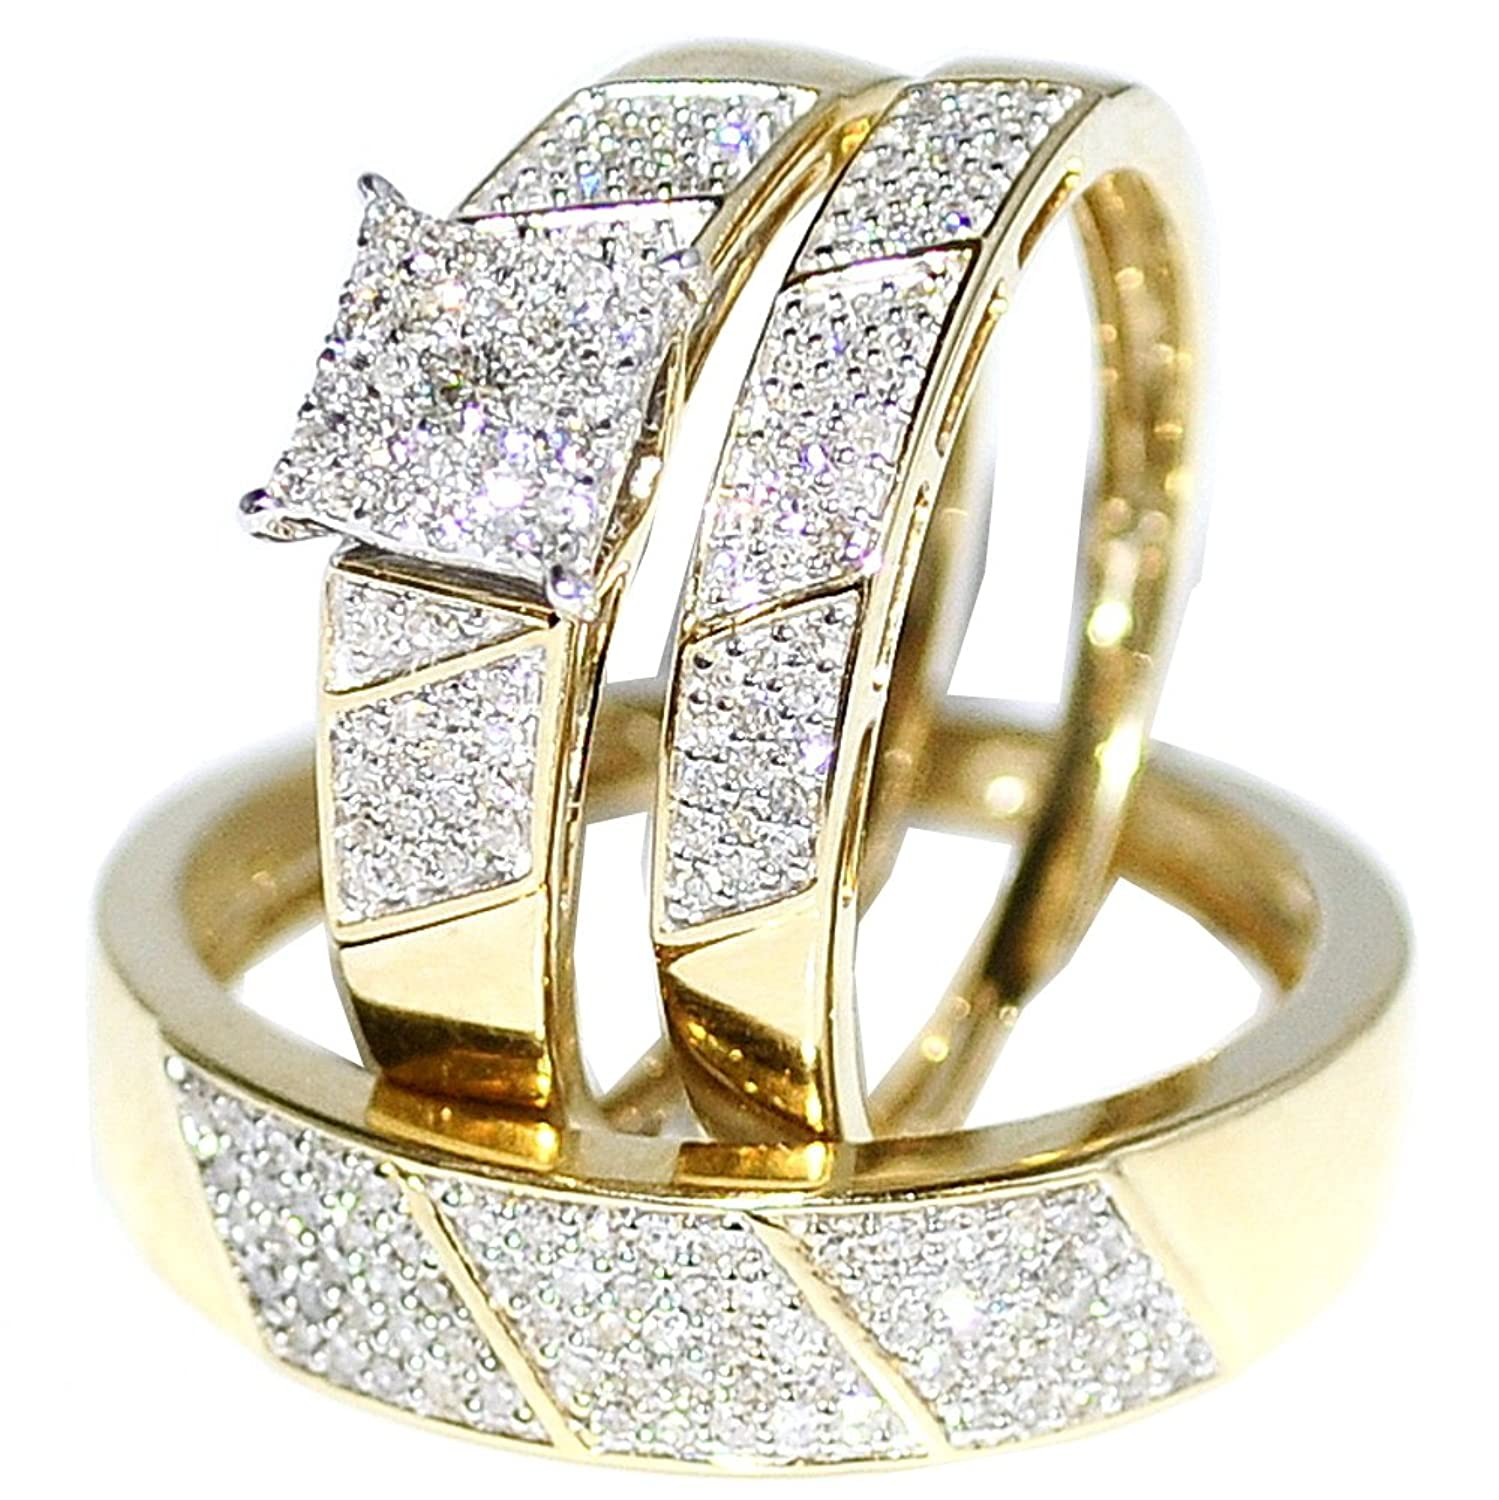 golden com set her dp amazon yellow men women wedding his jewelry trio rings gold diamond